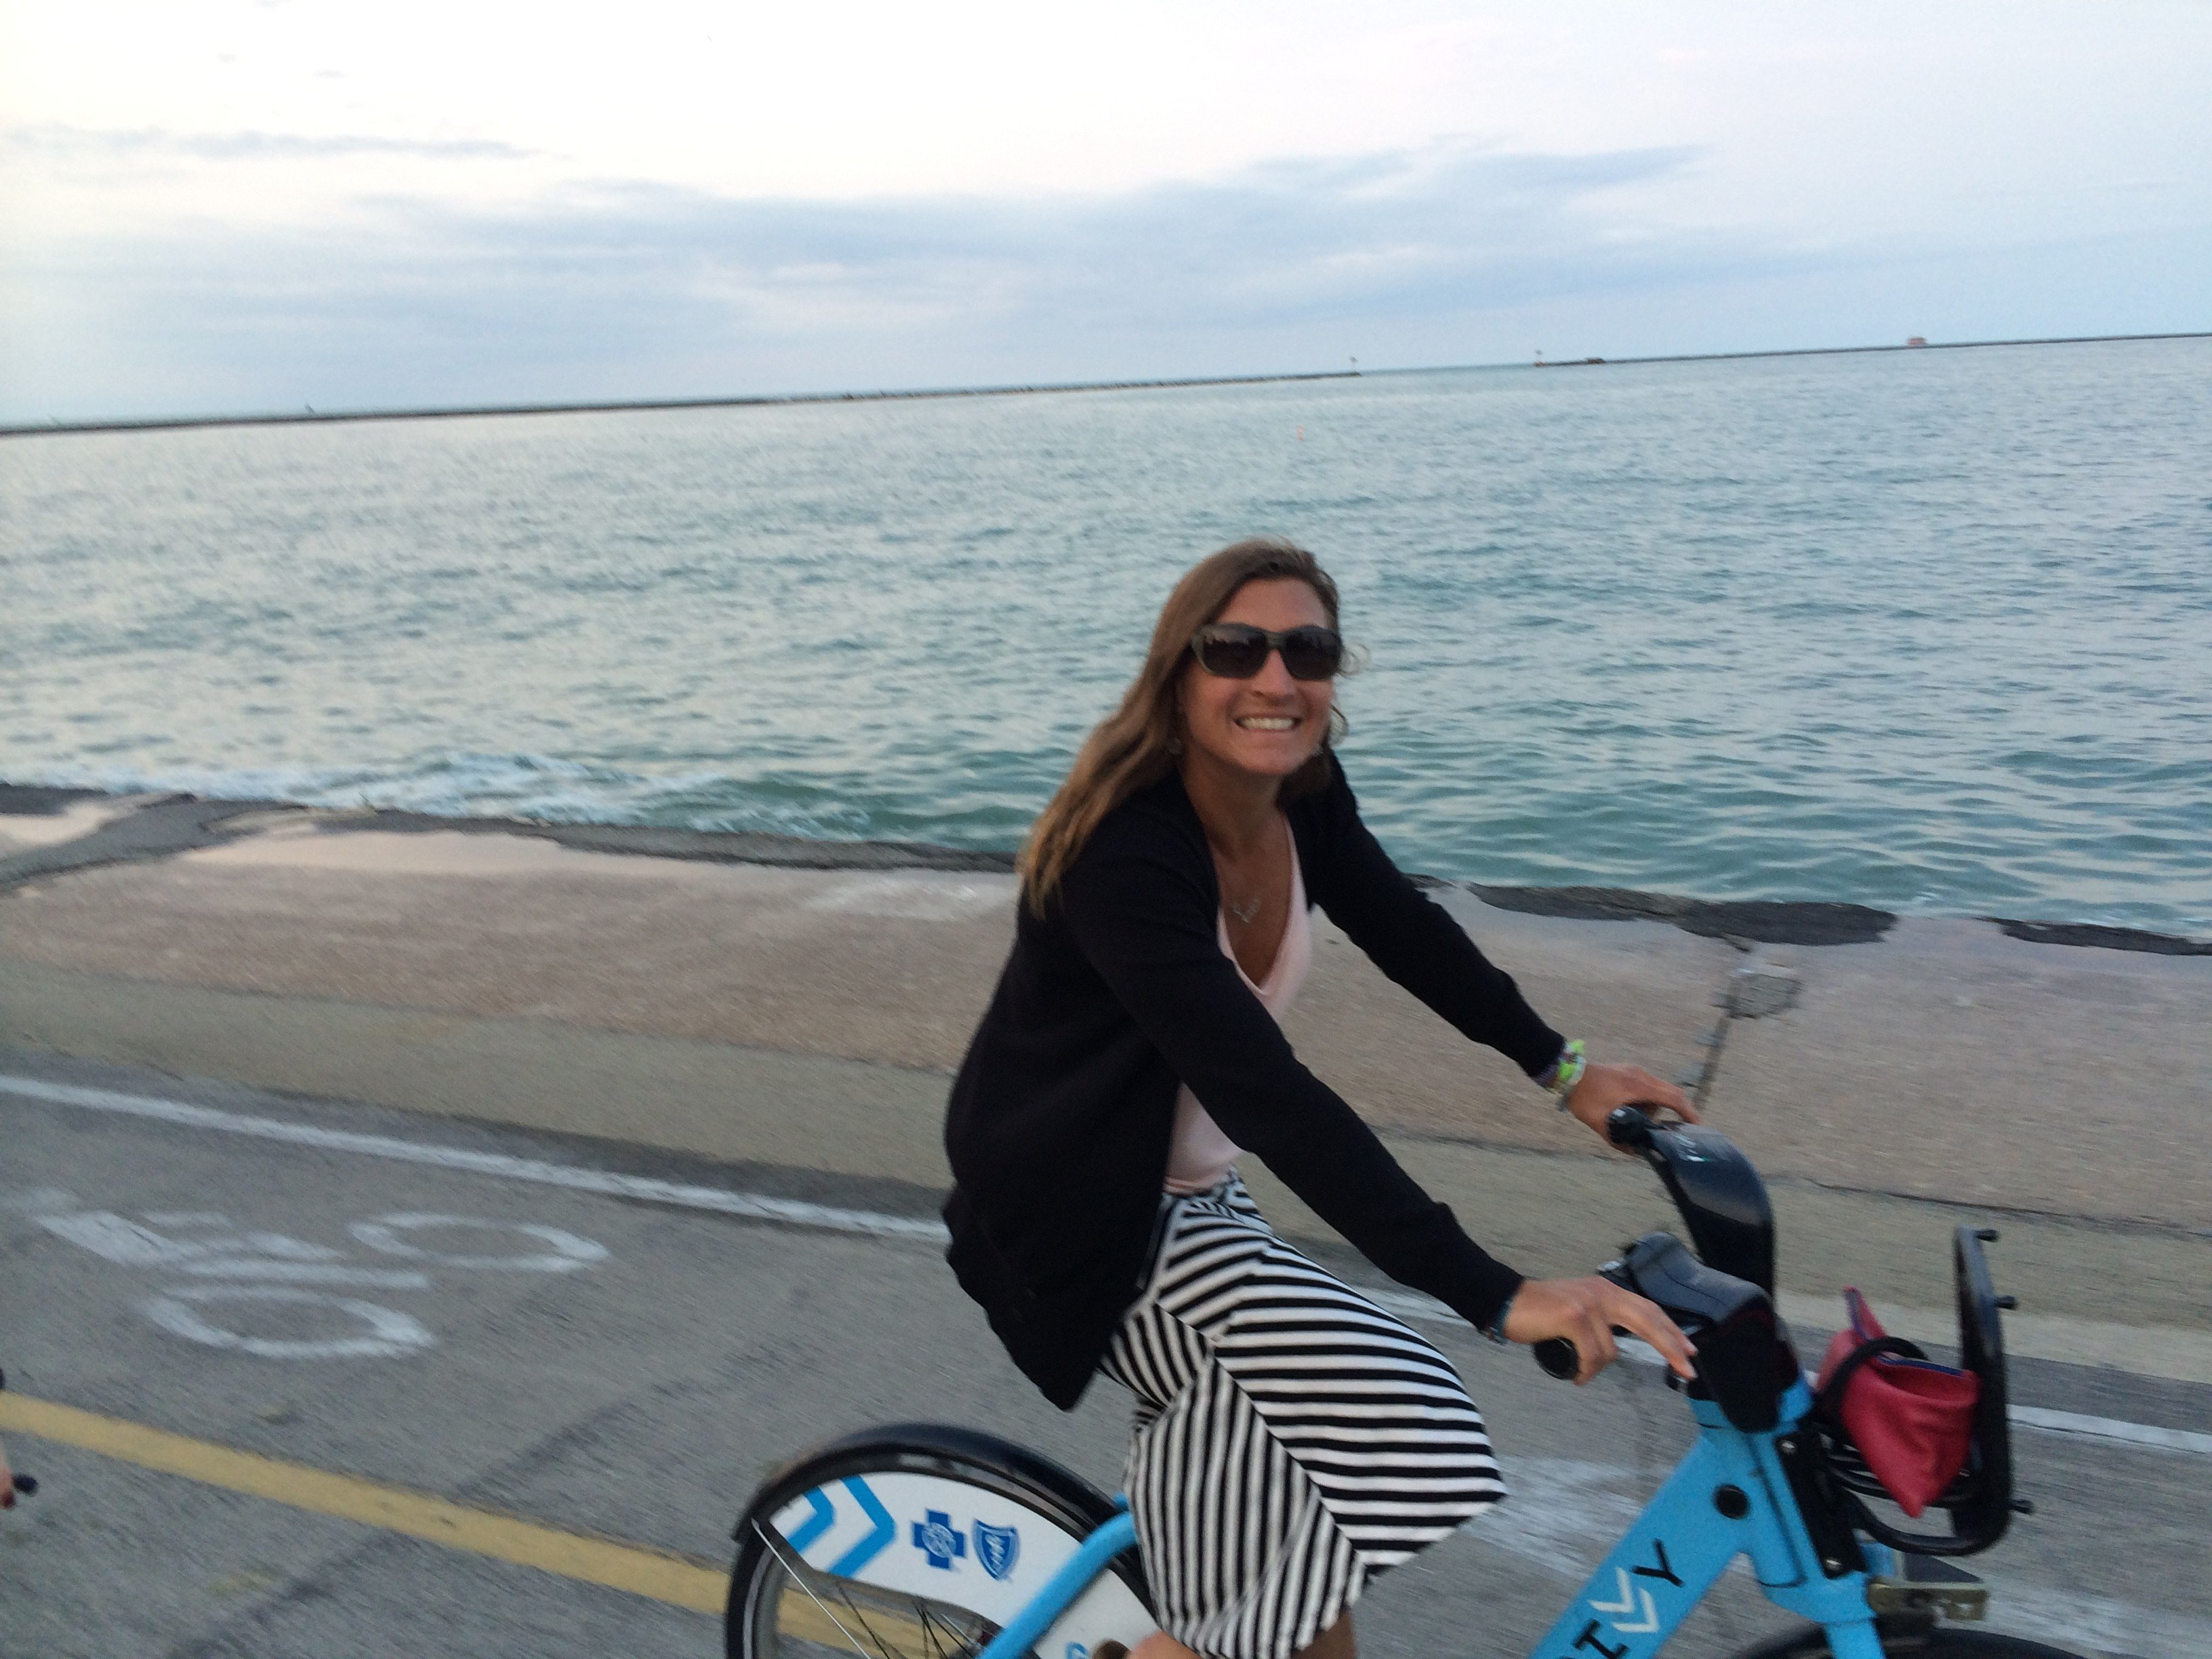 Trying to get some miles in on Chicago's Divvy commuter rental fleet- not exactly 7,000 feet of vert there to train on